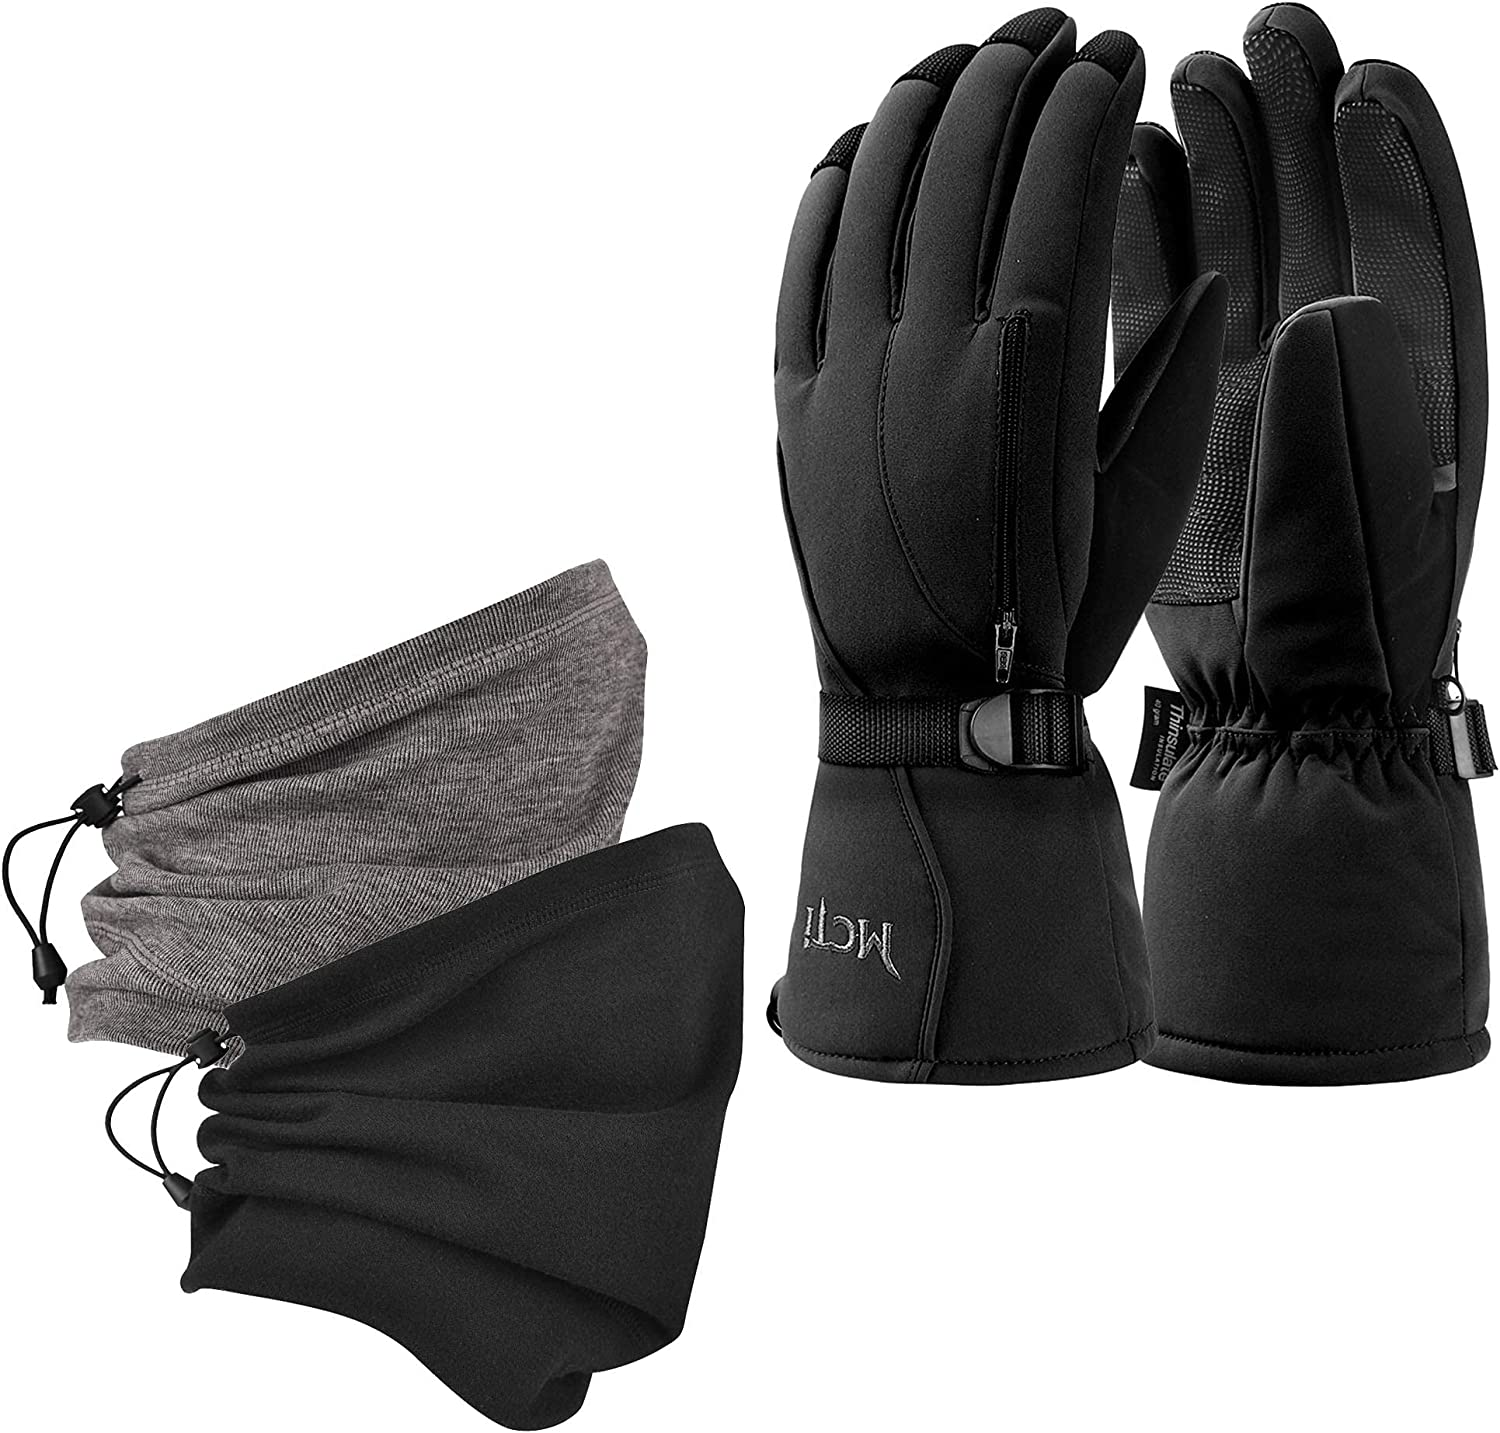 MCTi Waterproof Ski Gloves Winter Warm Neck Recommended 3M Thinsulate Gait + Max 57% OFF